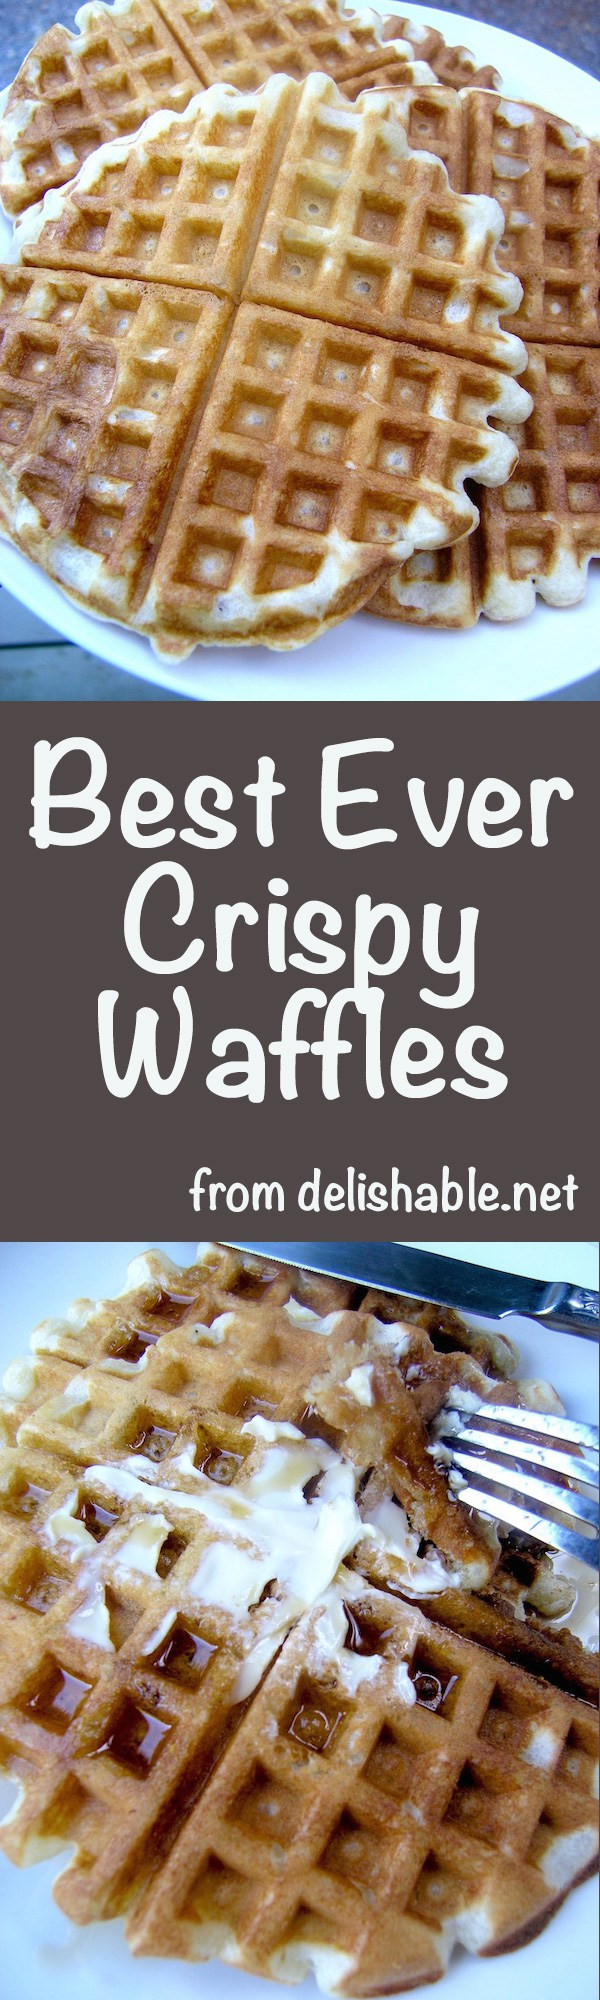 Best Ever Crispy Waffles recipe - no more limp or leathery waffles! You will be delighted with the delicate flavor and crispy texture of these waffles! | delishable.net